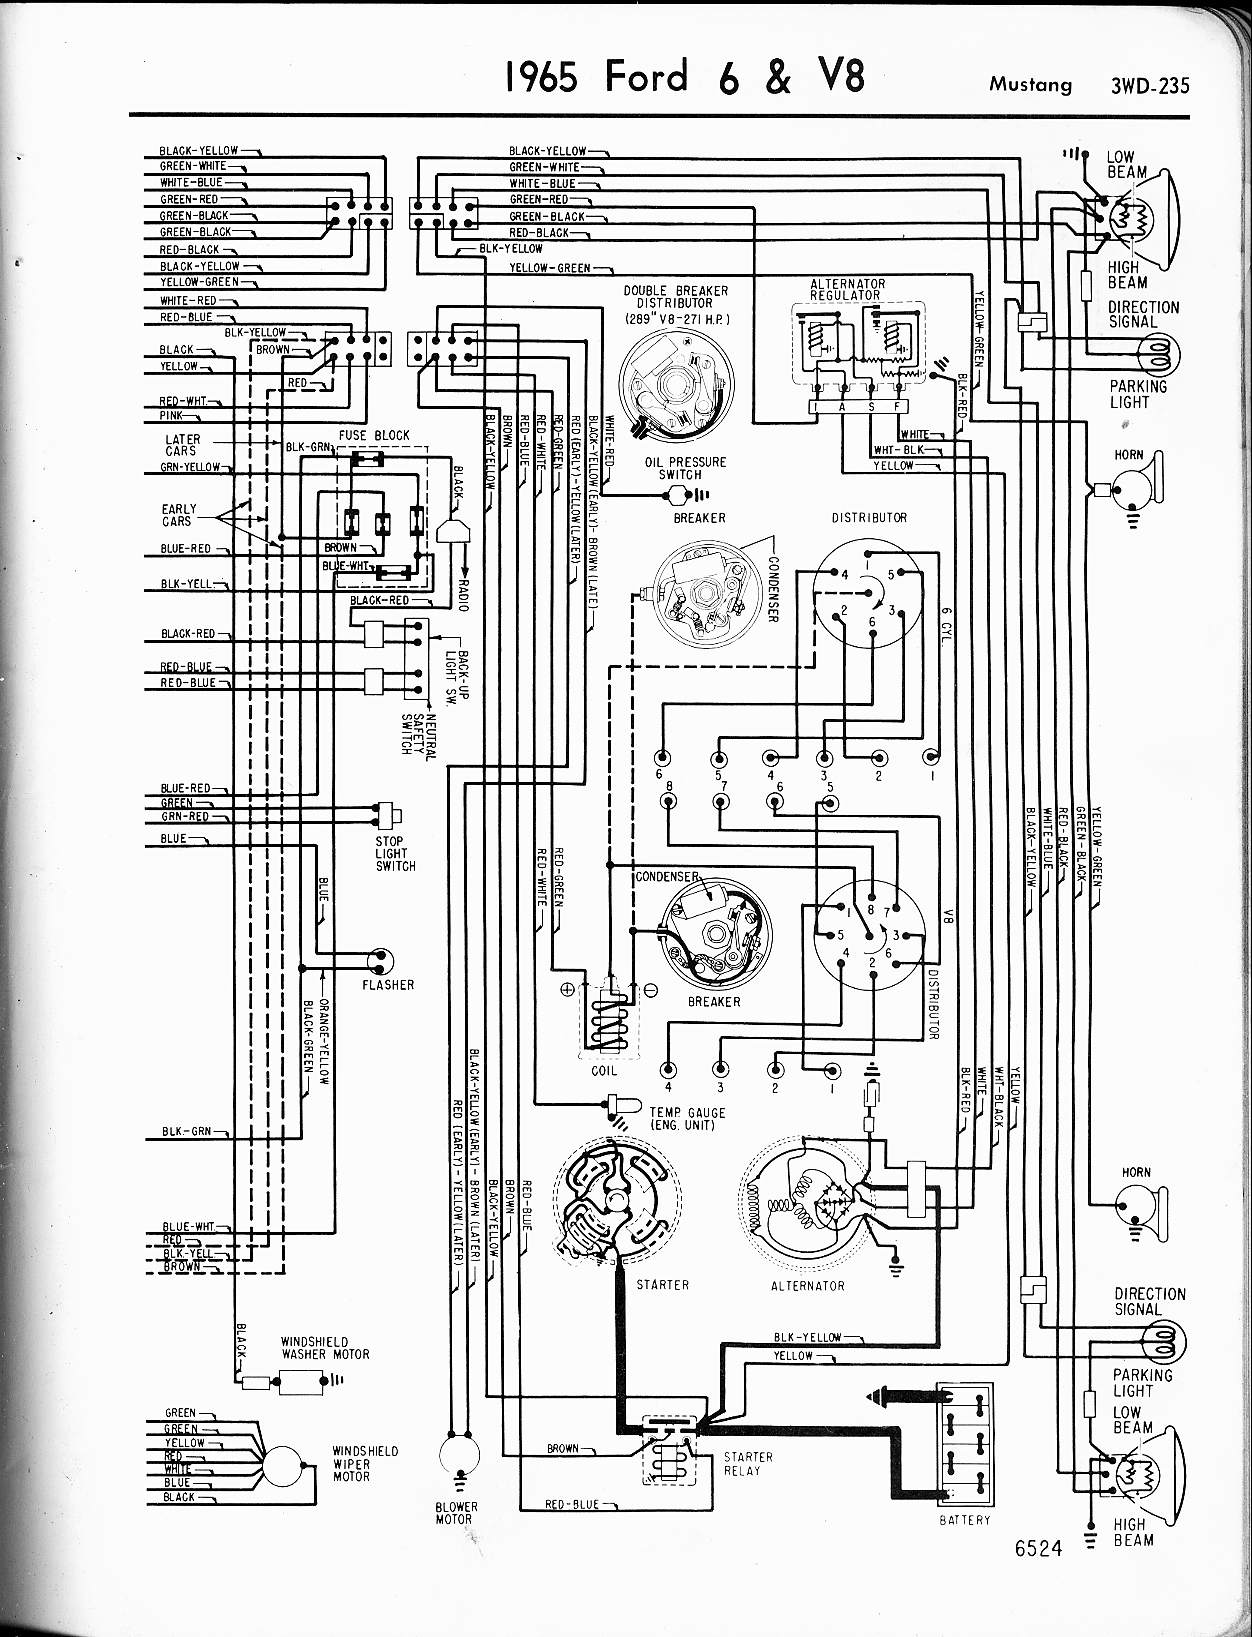 MWire5765 235 alternator wiring ford muscle forums ford muscle cars tech forum 1969 mustang voltage regulator wiring diagram at mifinder.co